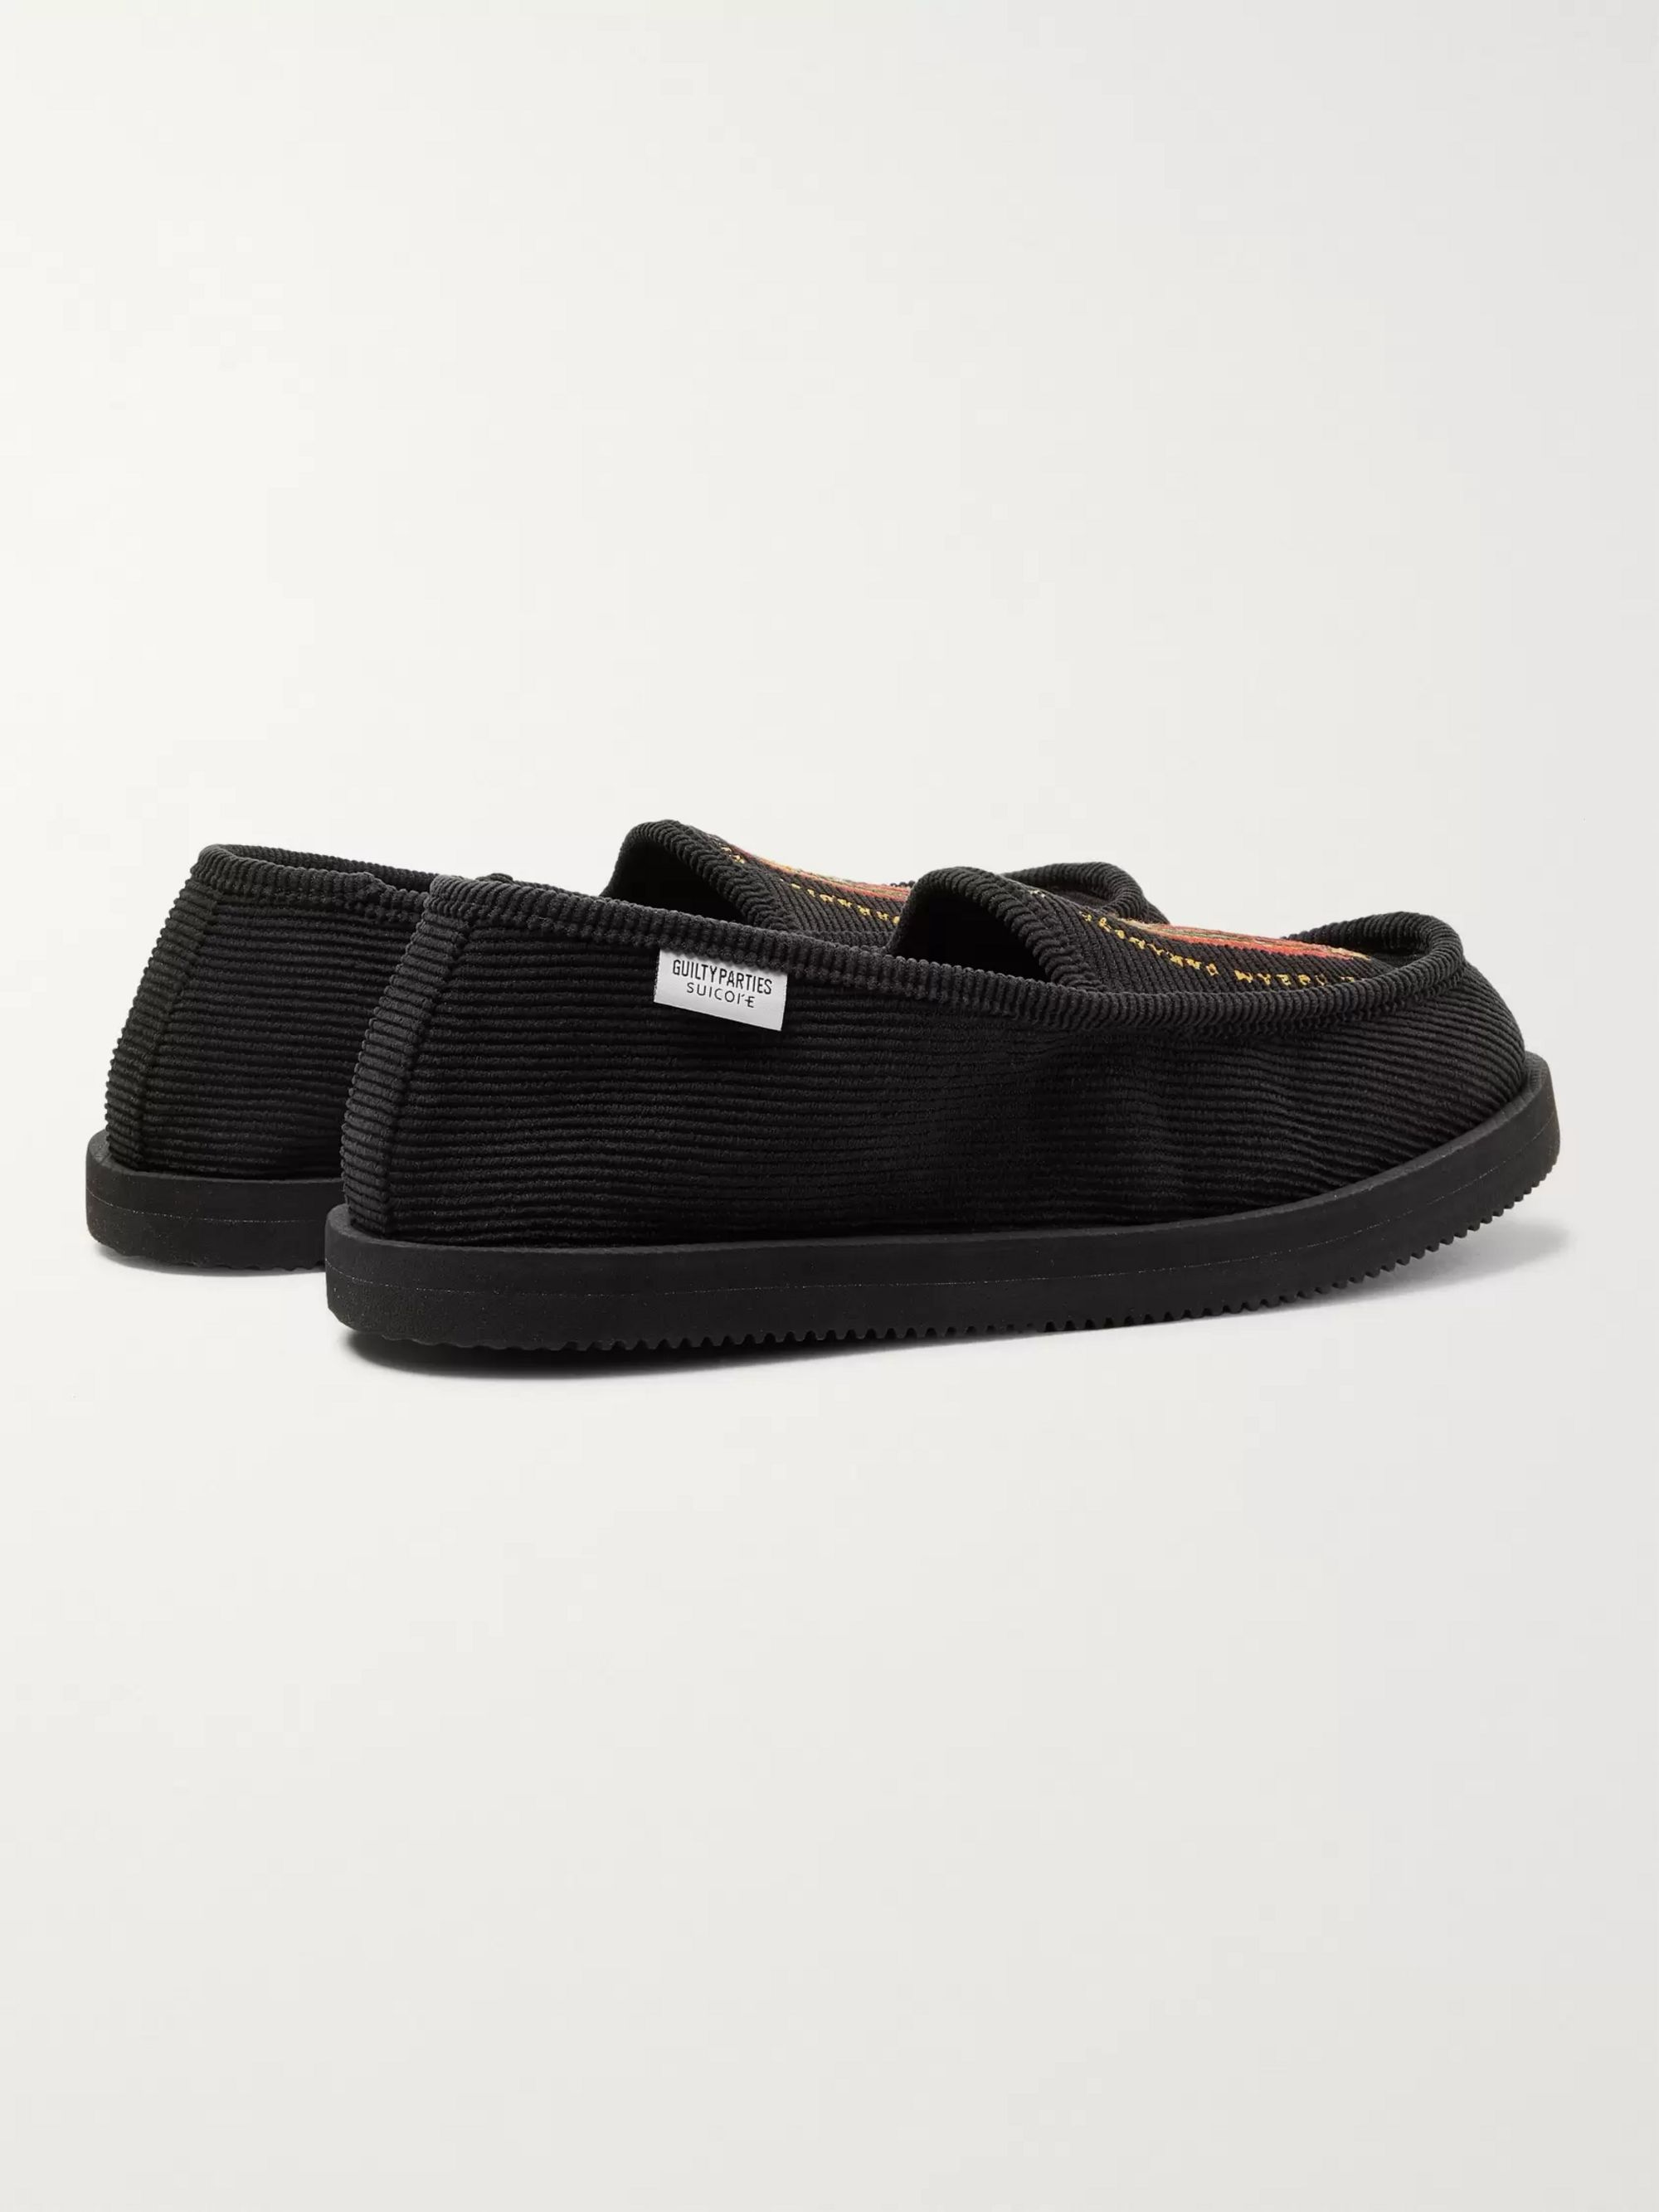 Wacko Maria + Suicoke Deebo Embroidered Cotton-Blend Corduroy Loafers